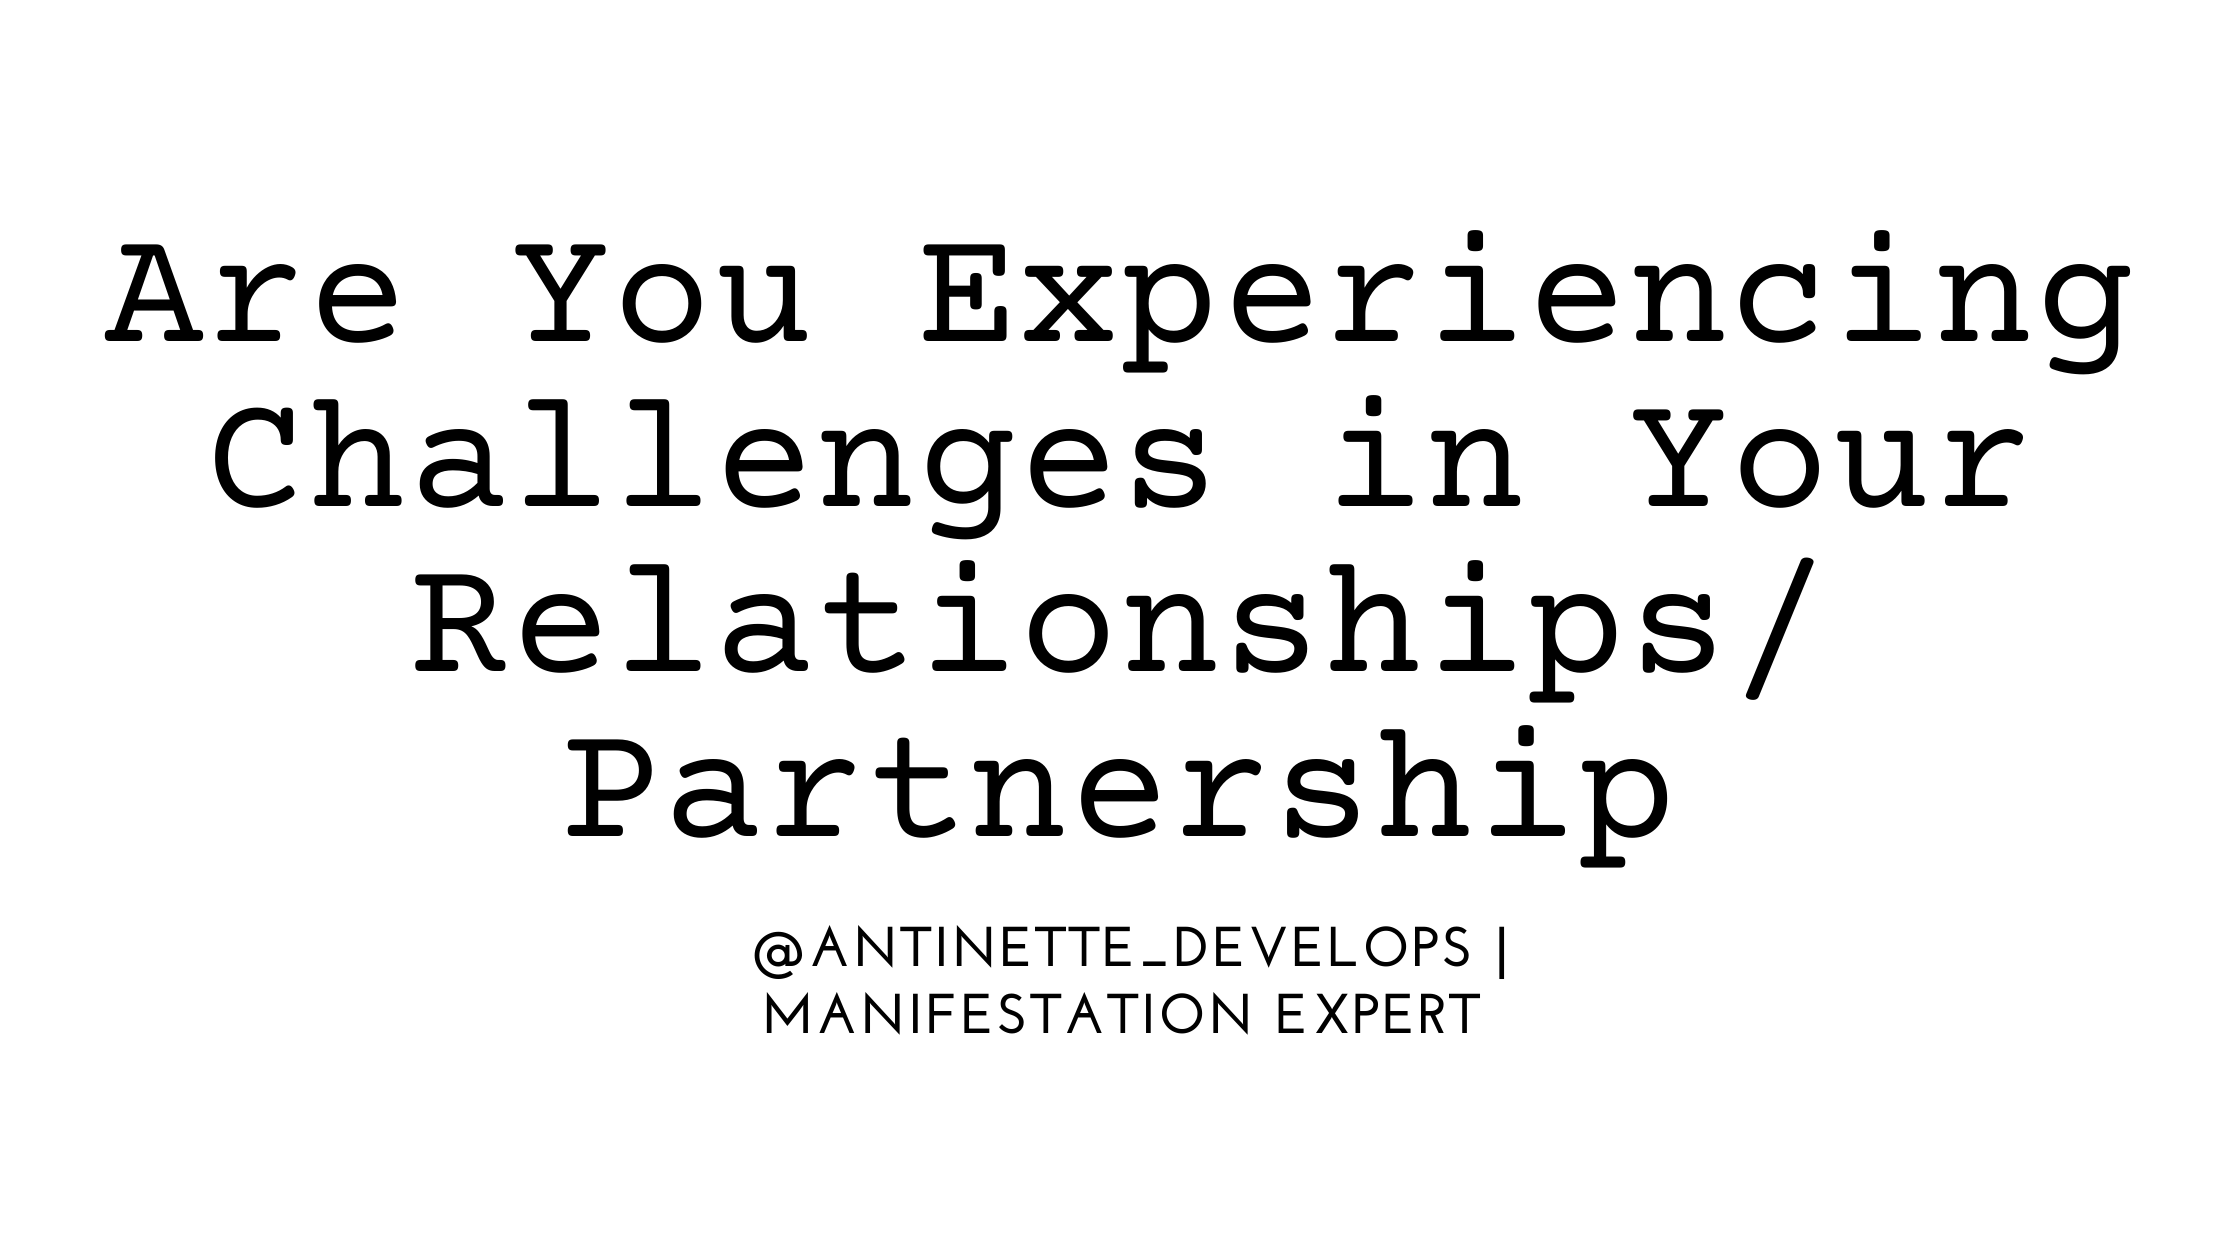 Are you experiencing challenges in your relationship or a partnership?